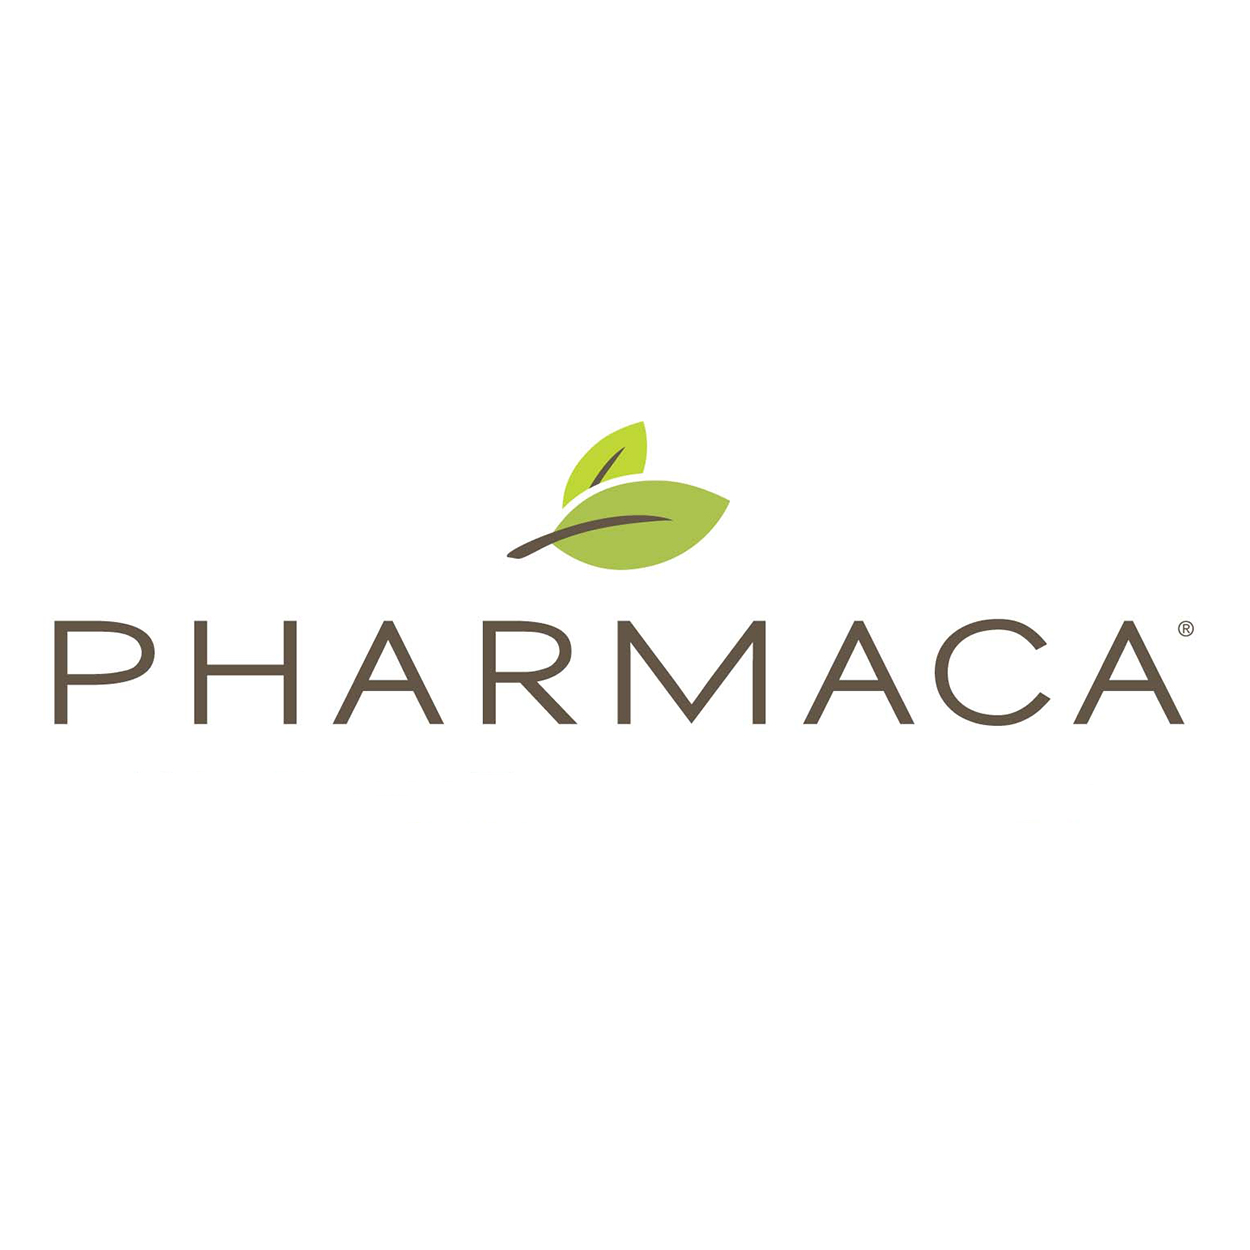 Pharmaca Double Insulated Barrel Mug with Lid 17oz